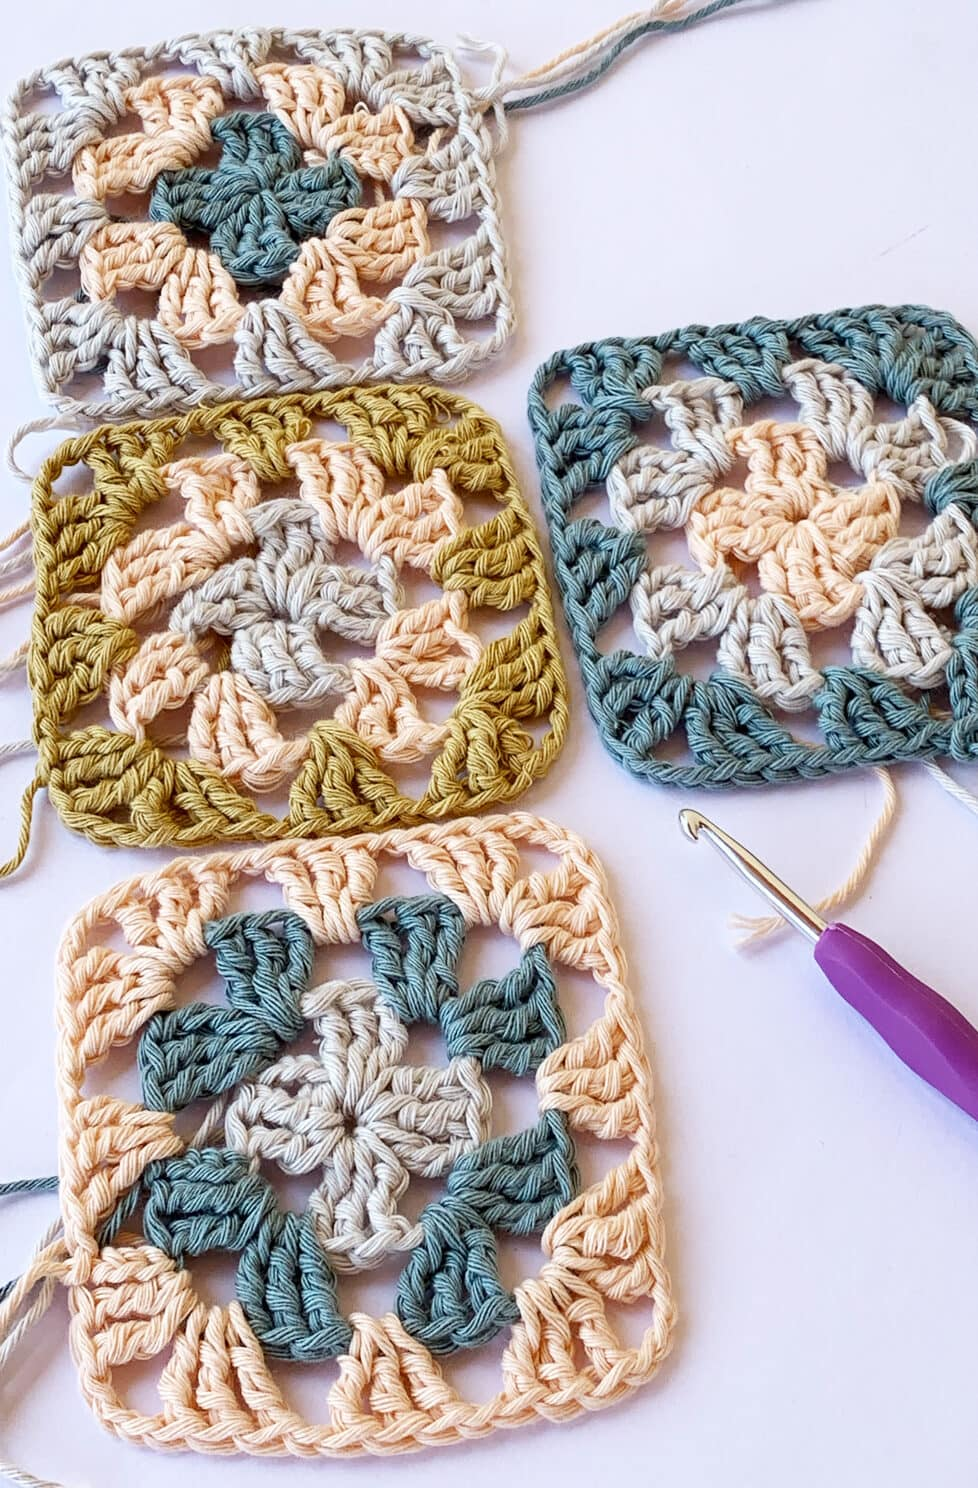 crochet granny squares made from cotton